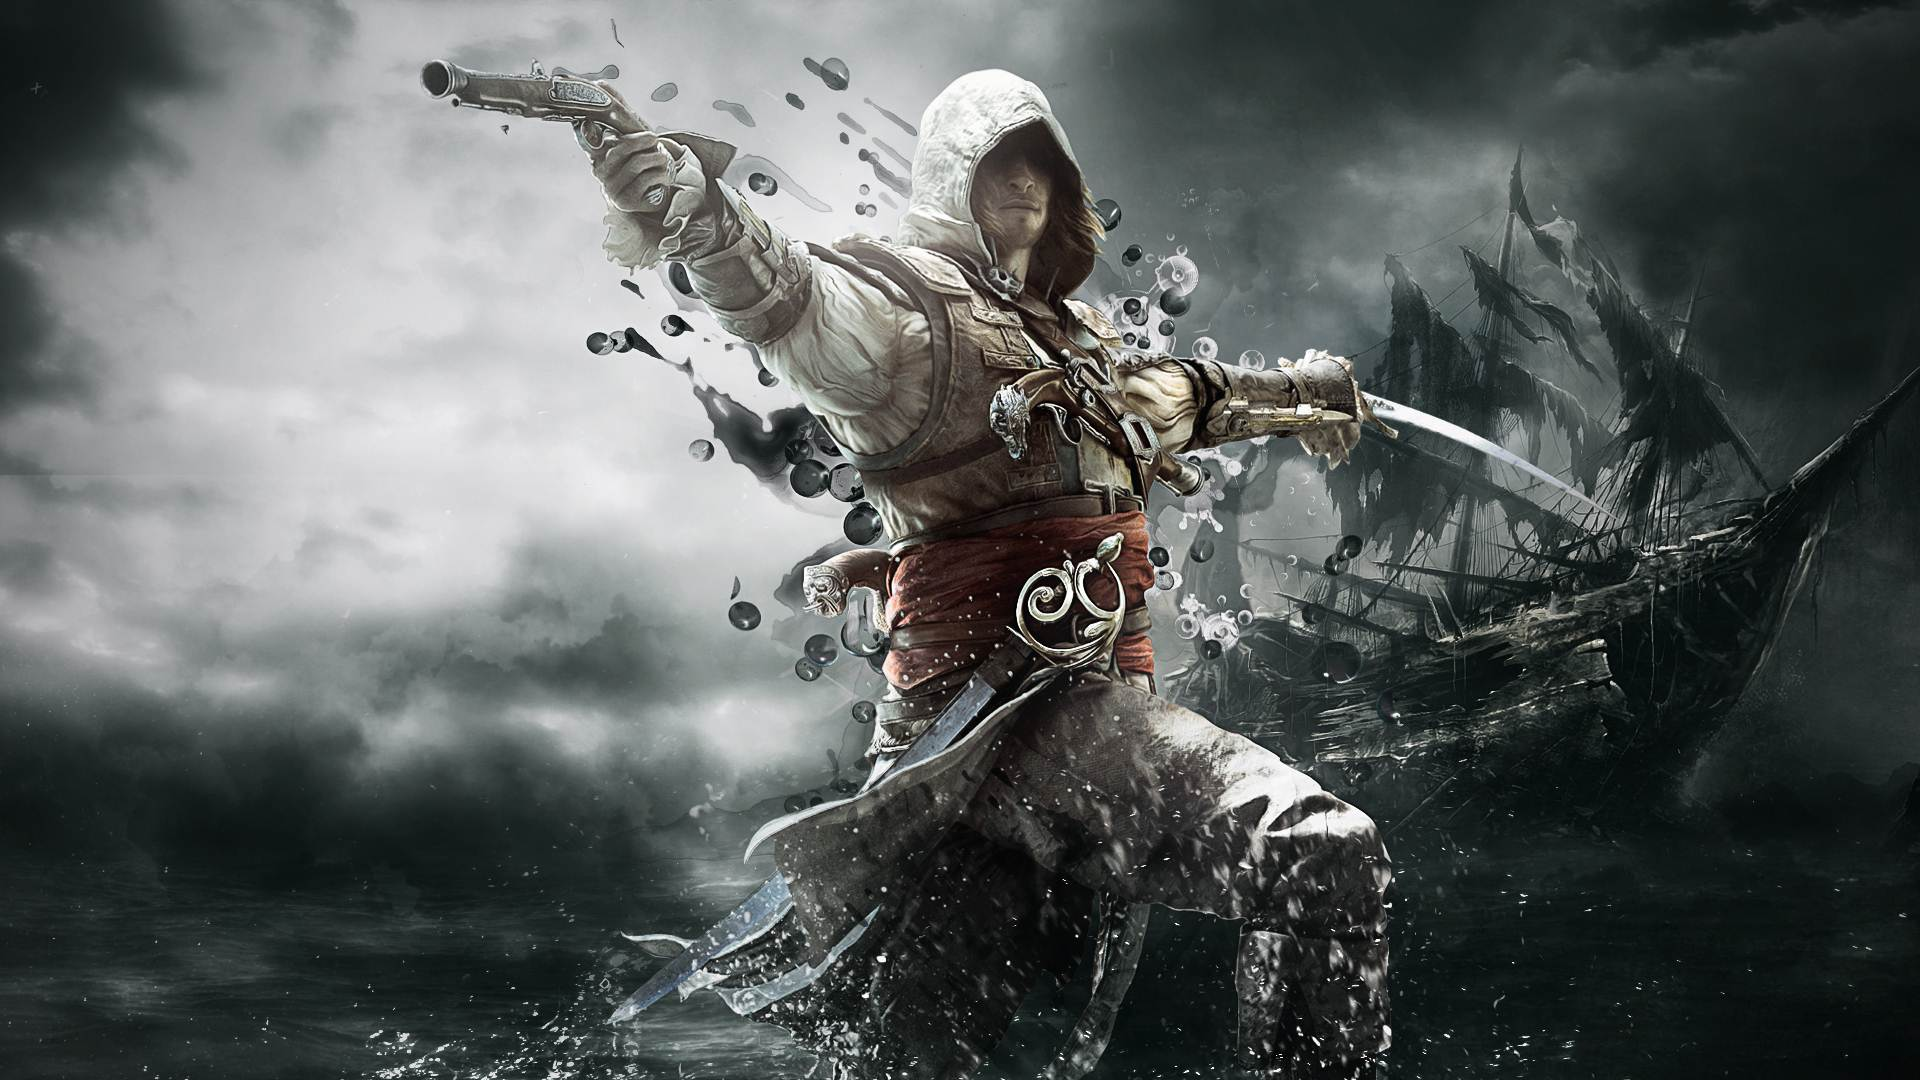 Assassins Creed 4 Wallpaper Hd 1080p Images amp Pictures   Becuo 1920x1080